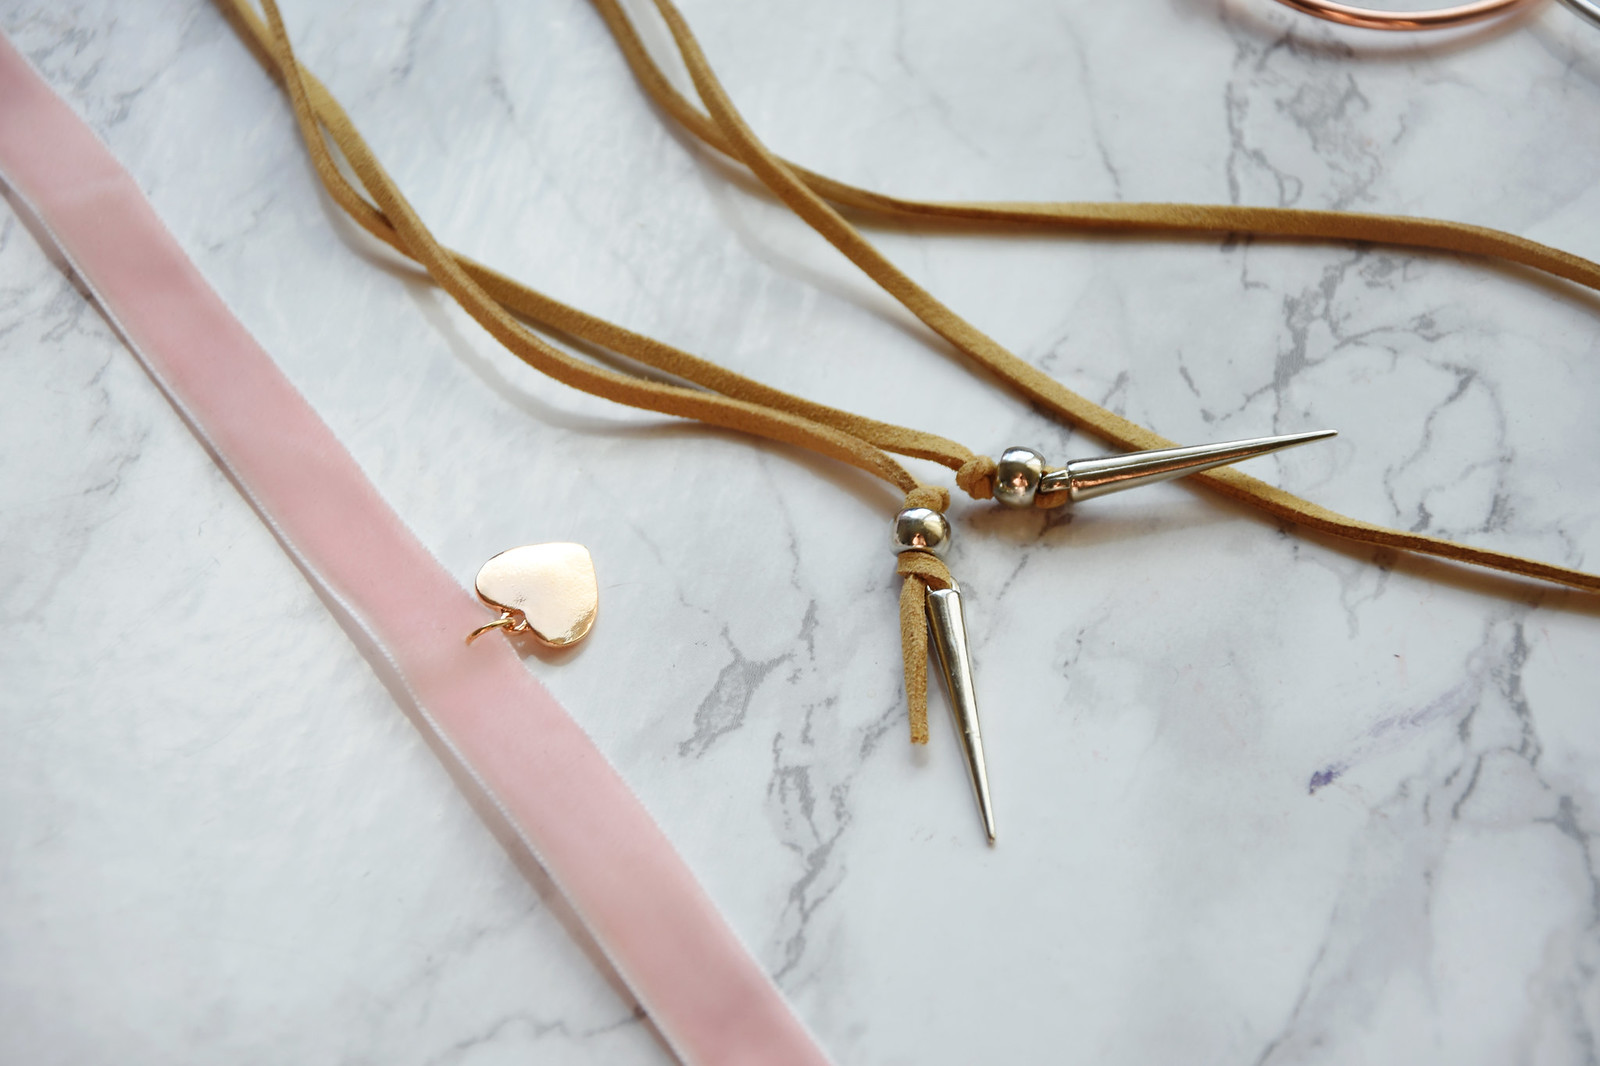 Choker necklace from Ebay review